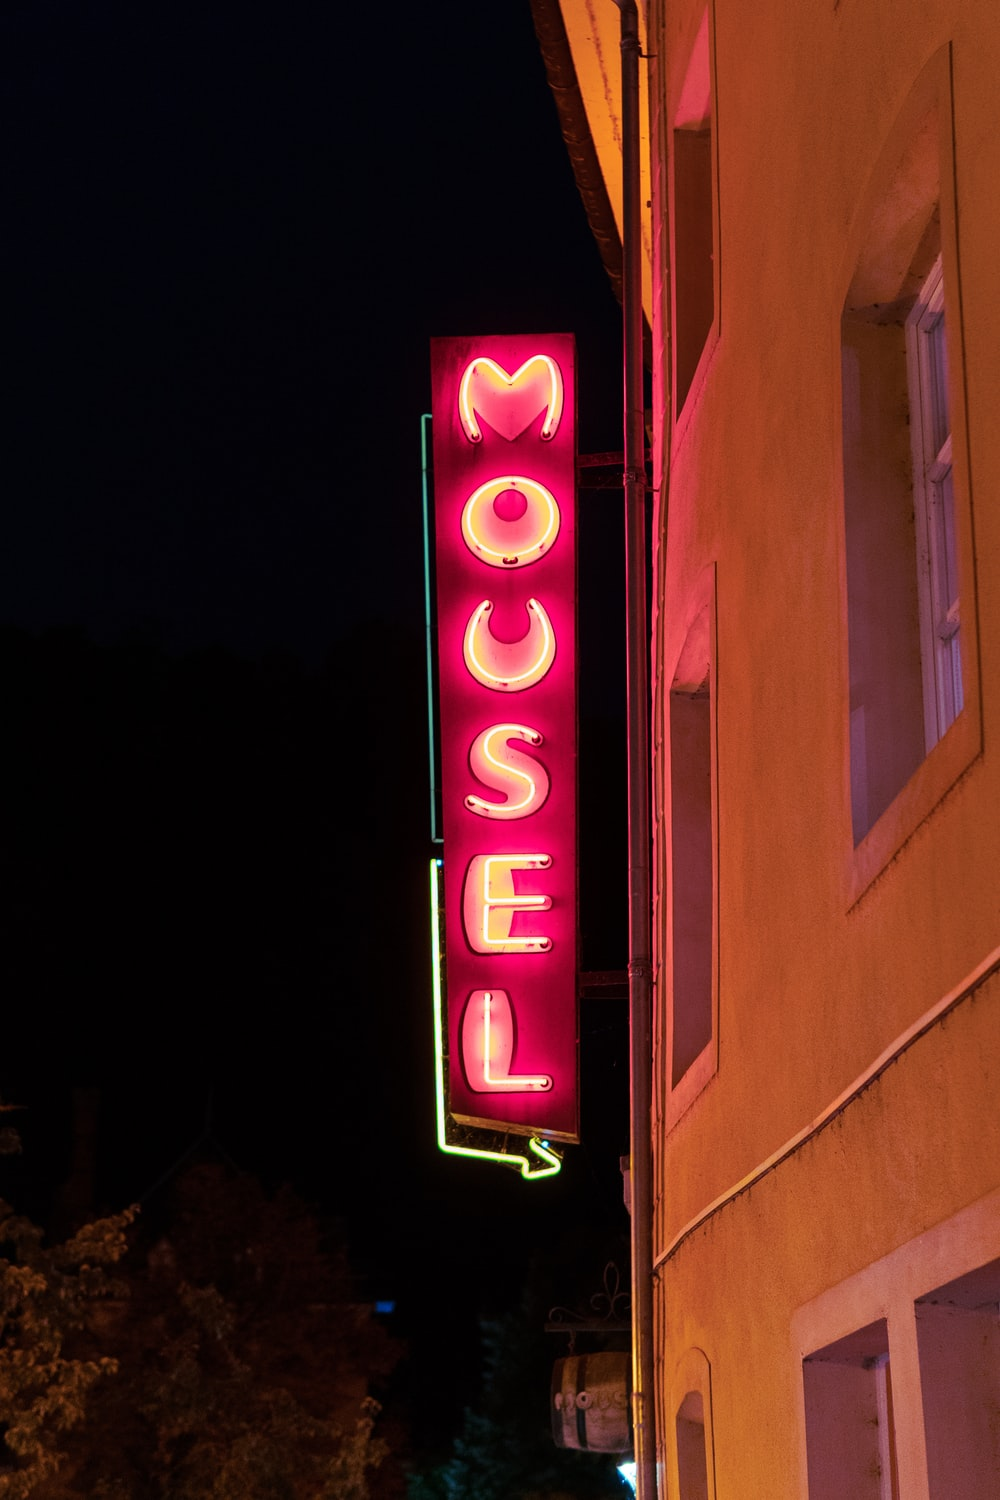 Mousel signage